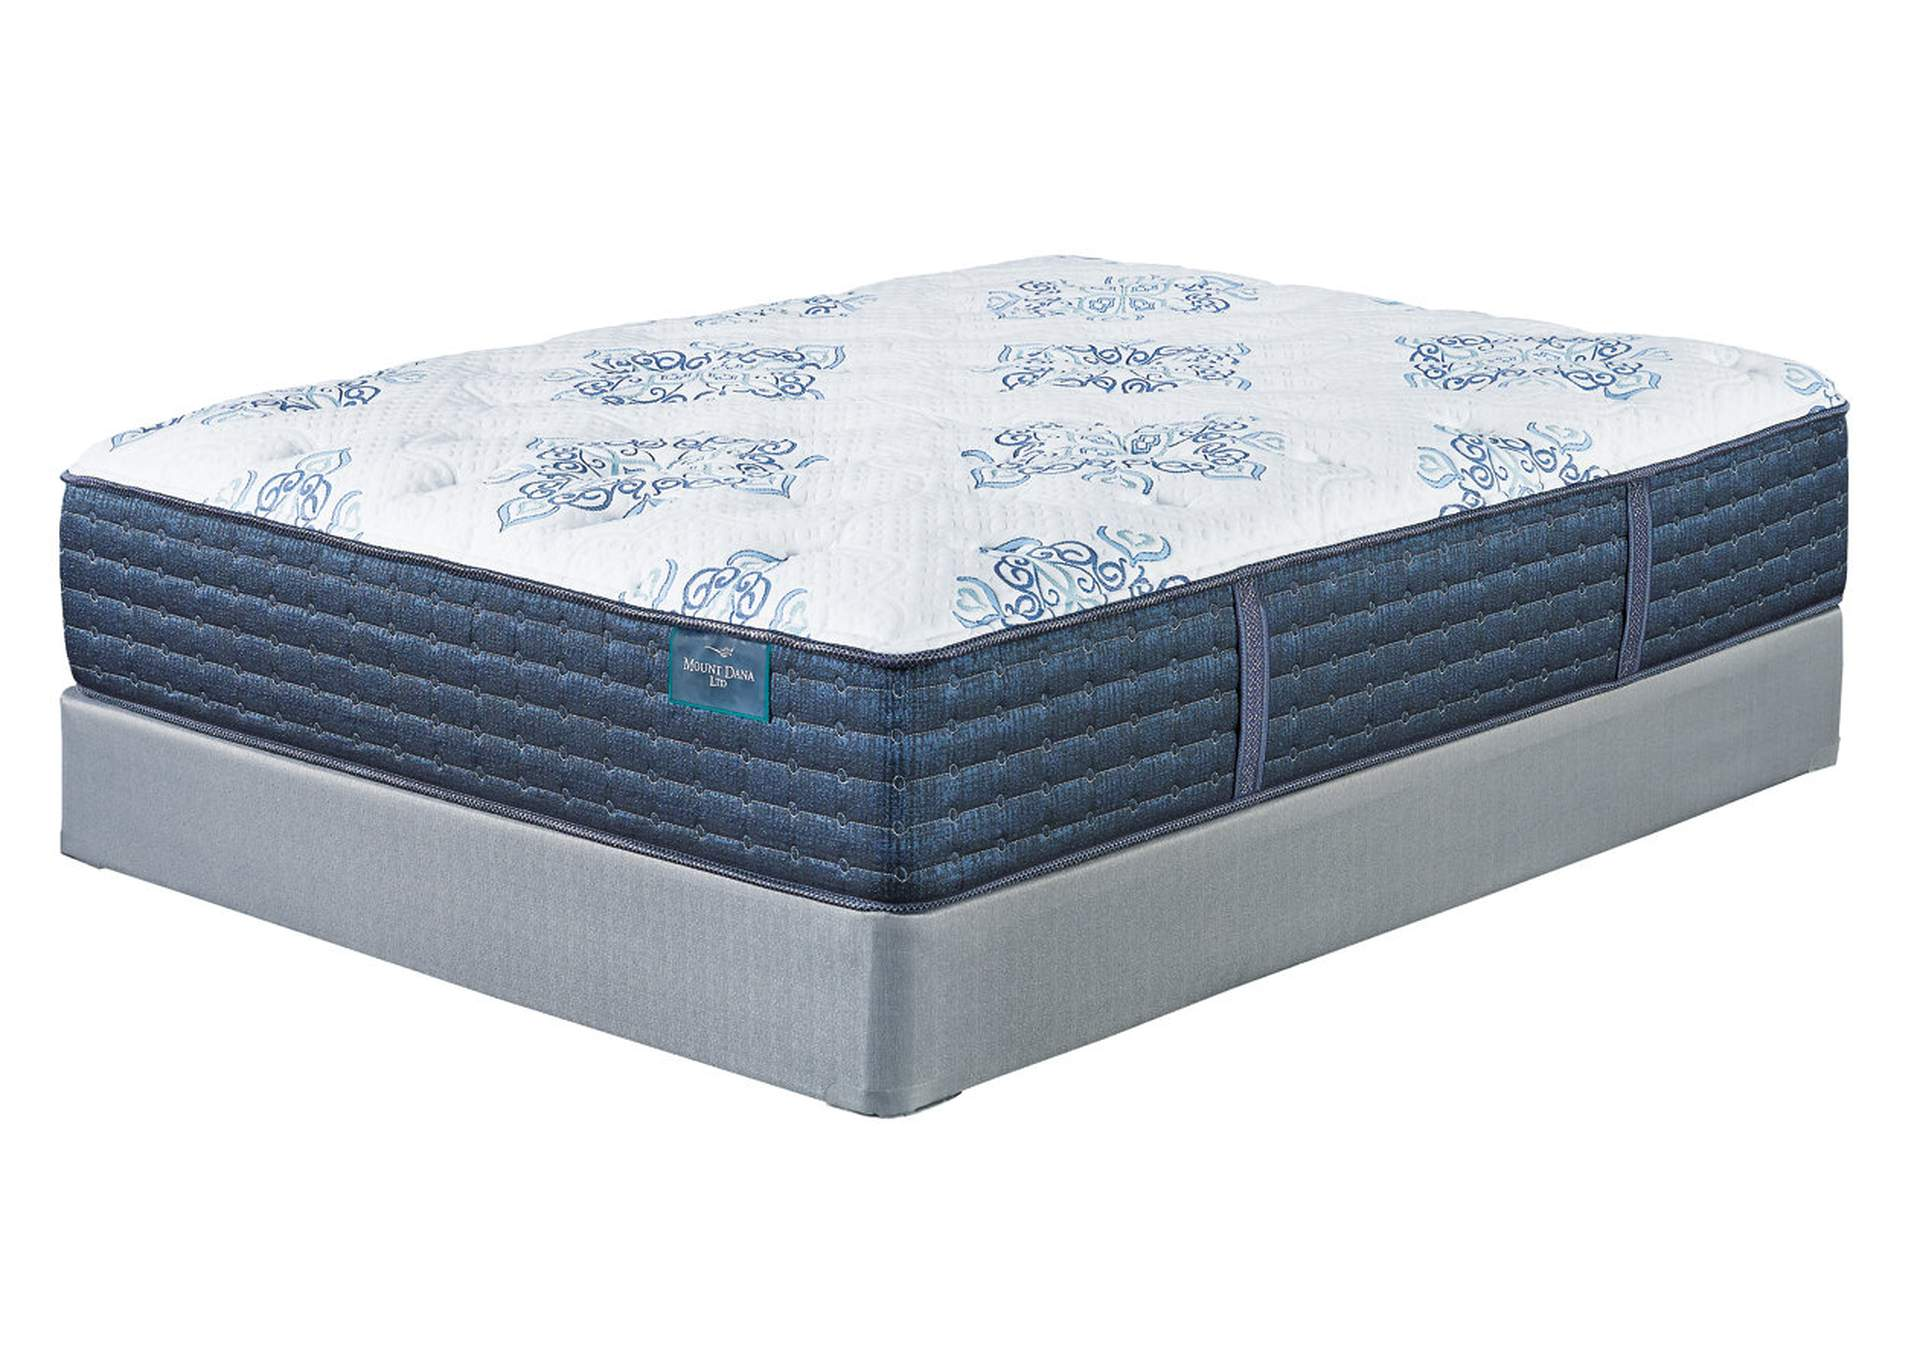 Mount Dana Plush White Twin Mattress,Sierra Sleep by Ashley